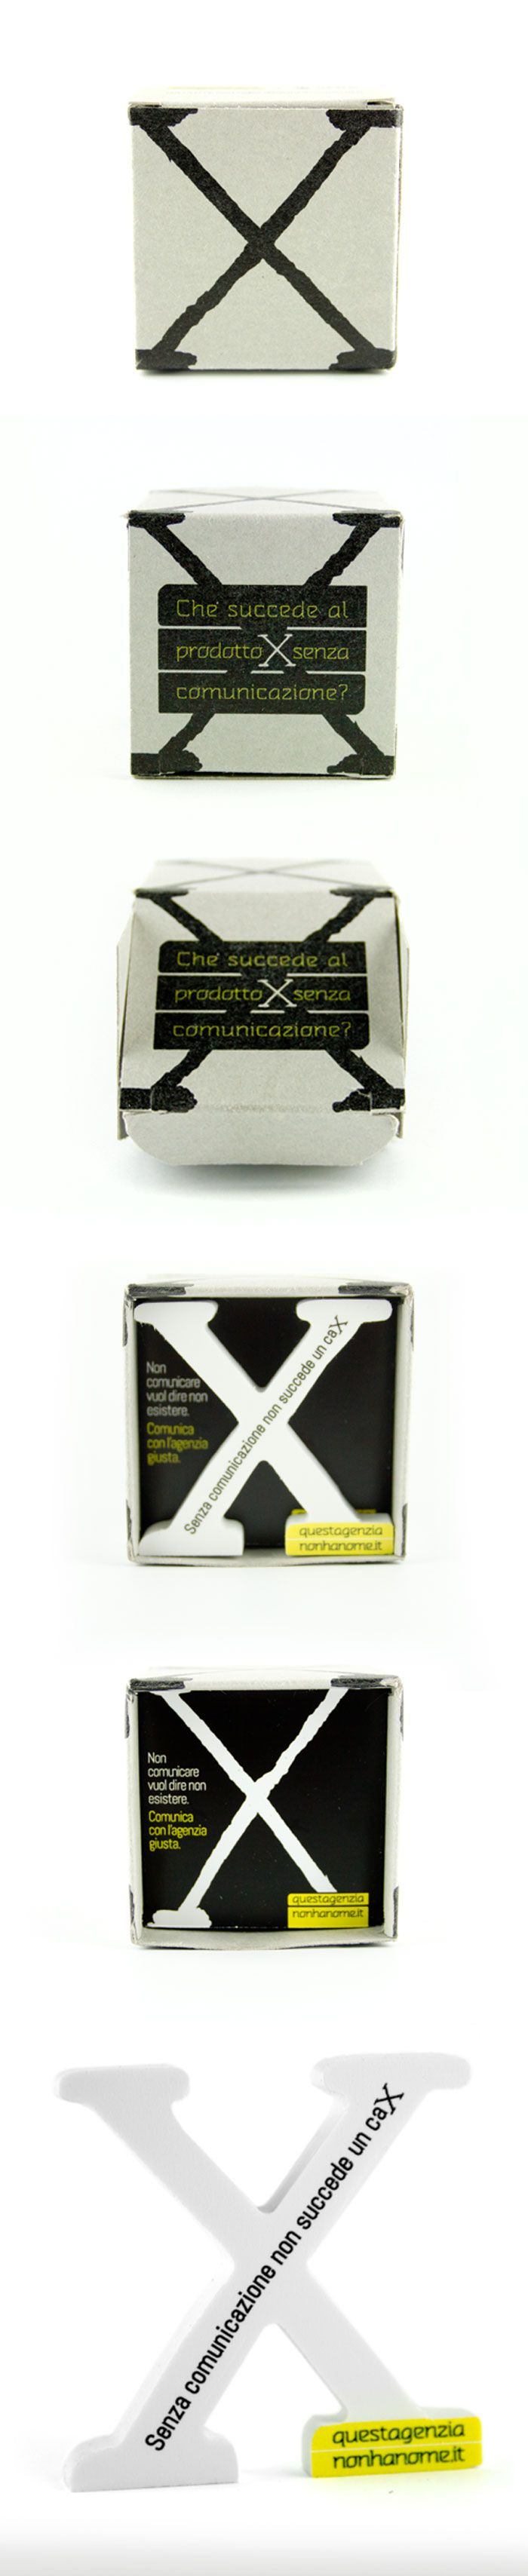 X packaging #questagenzianonhanome